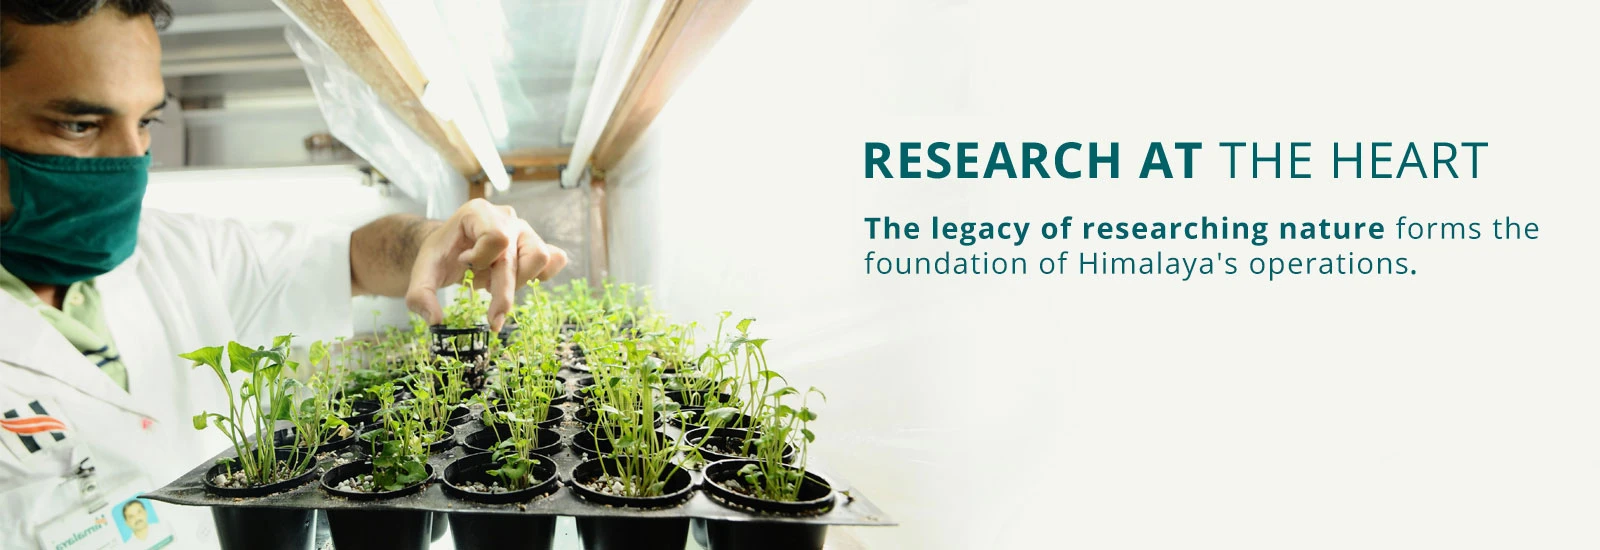 Scientist working on herbs - Research at the heart - The Himalaya Drug Company